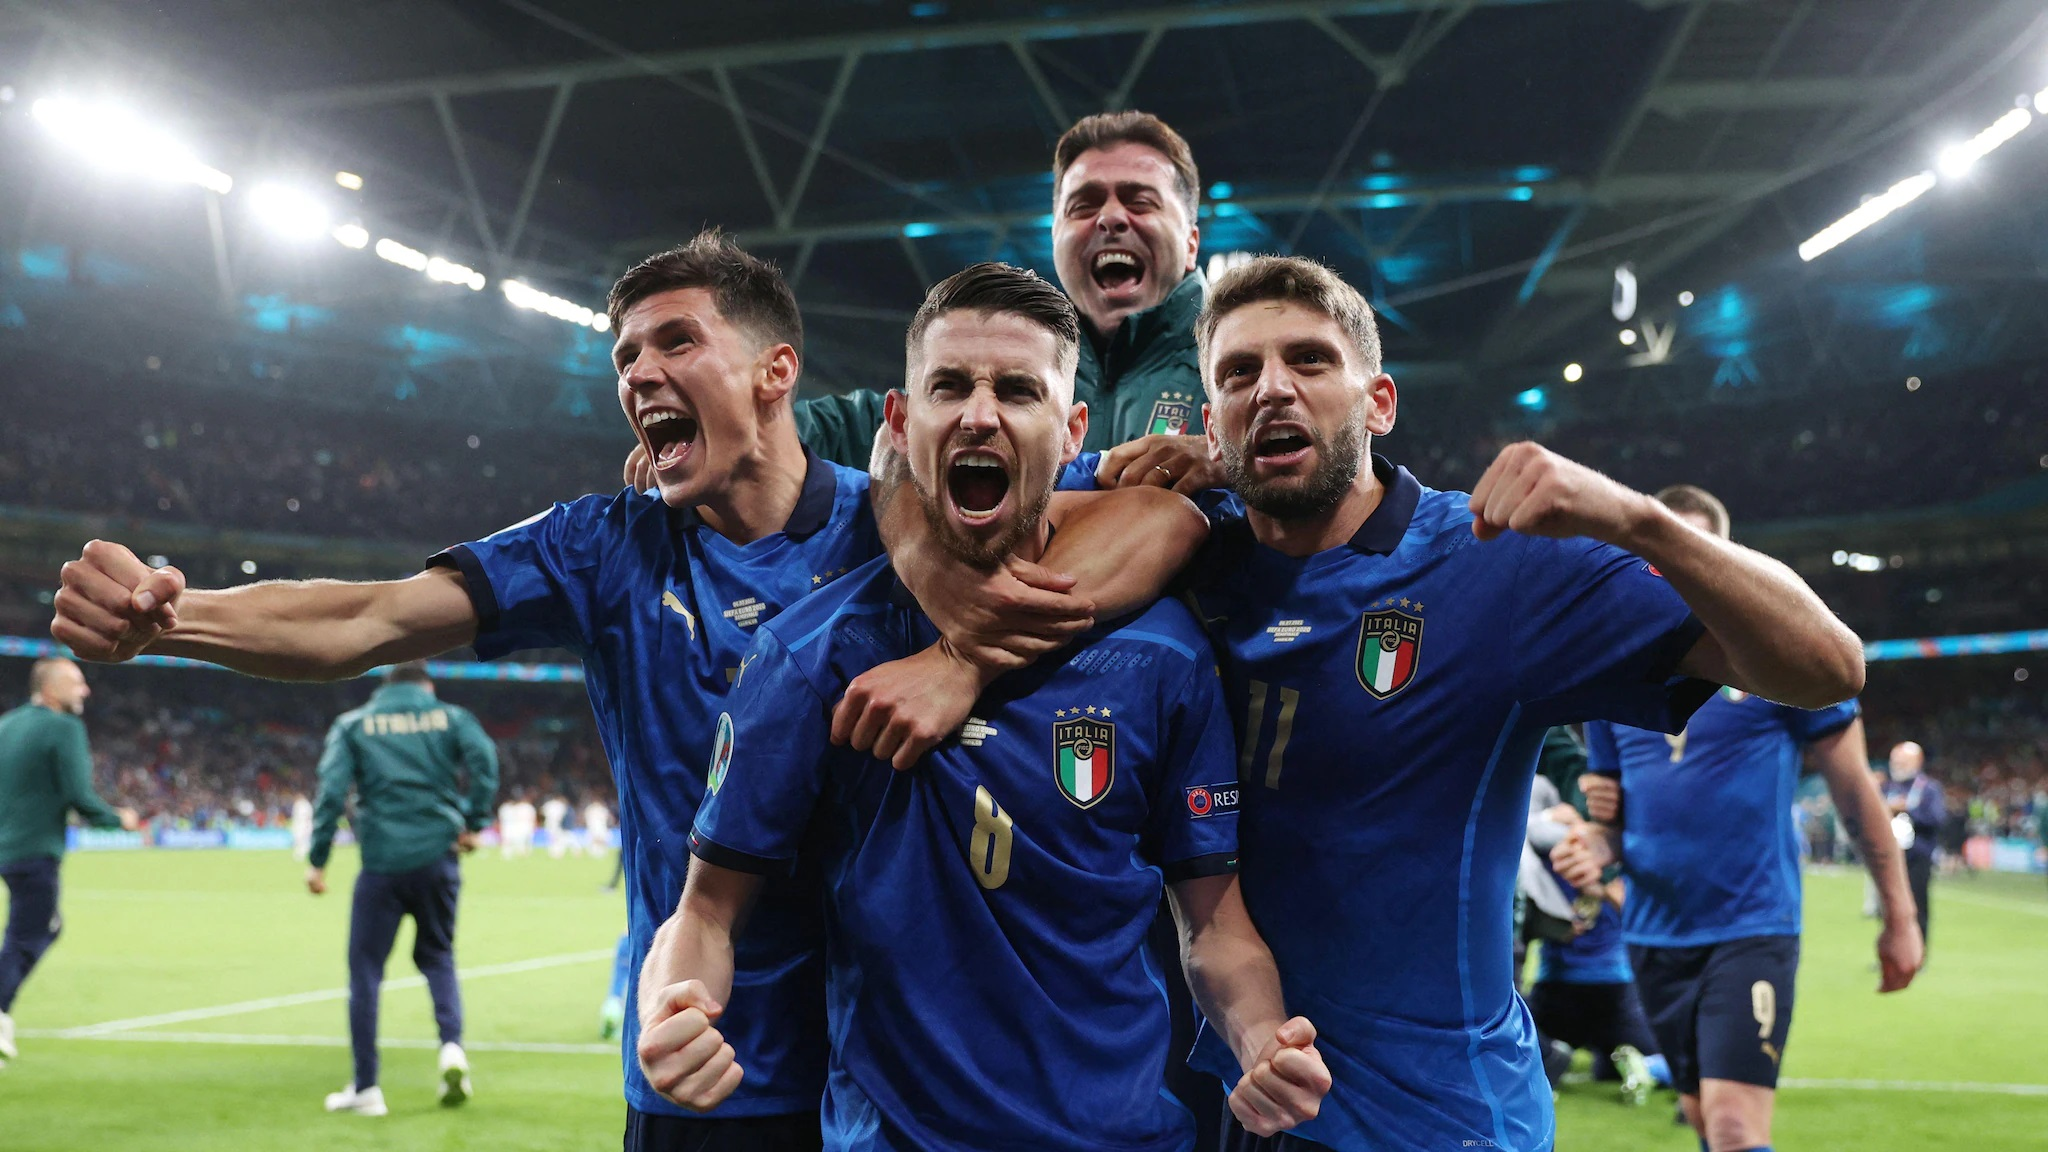 Italy Won Ticket to Final after Defeating Spain in Penalties